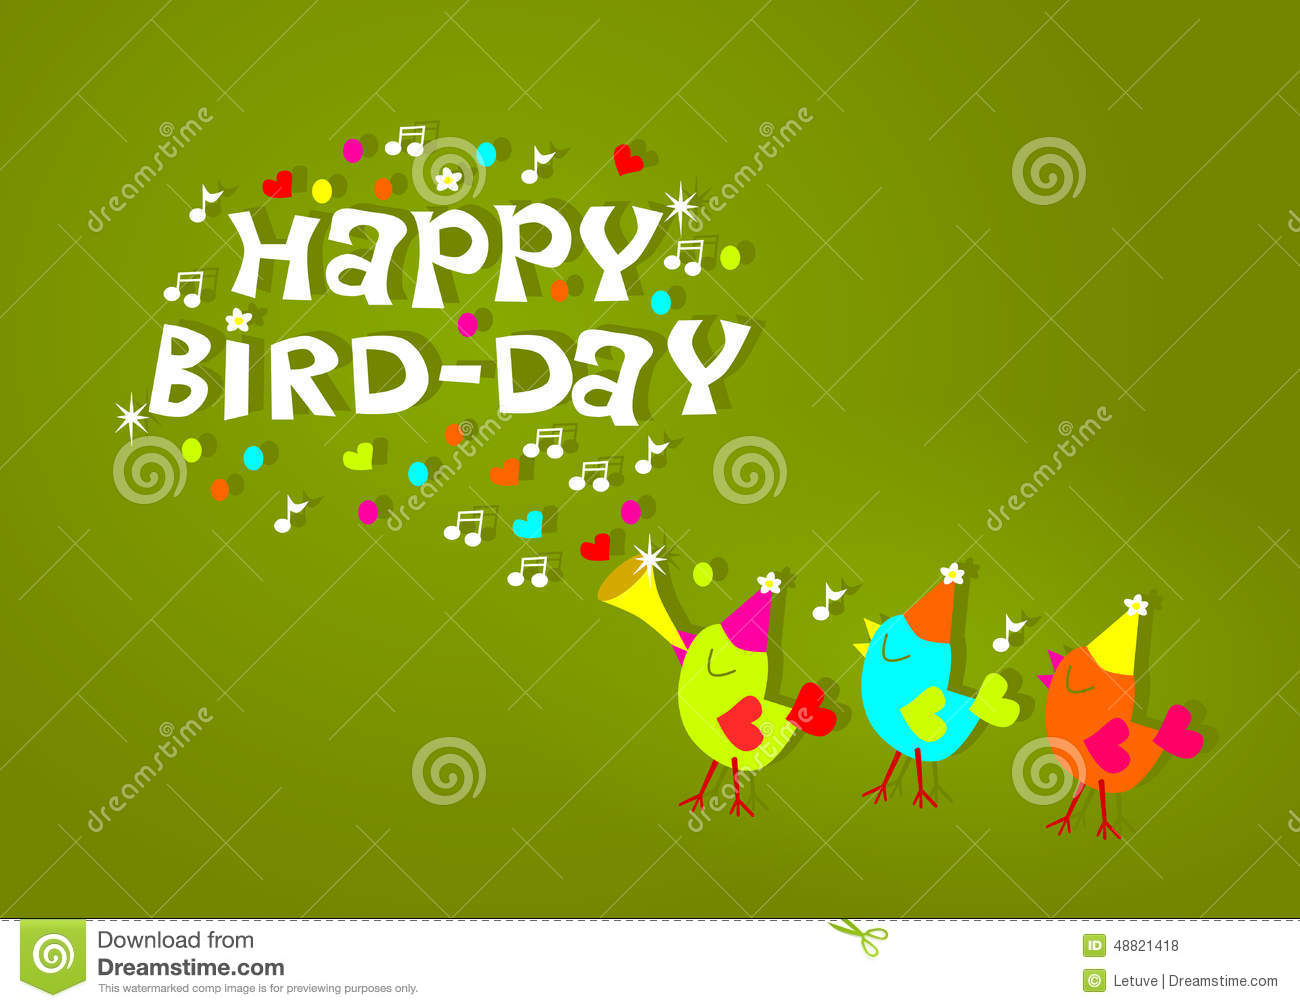 Greeting card with song image collections greetings card design simple happy birthday birds greeting card illustration 48821418 megapixl m4hsunfo